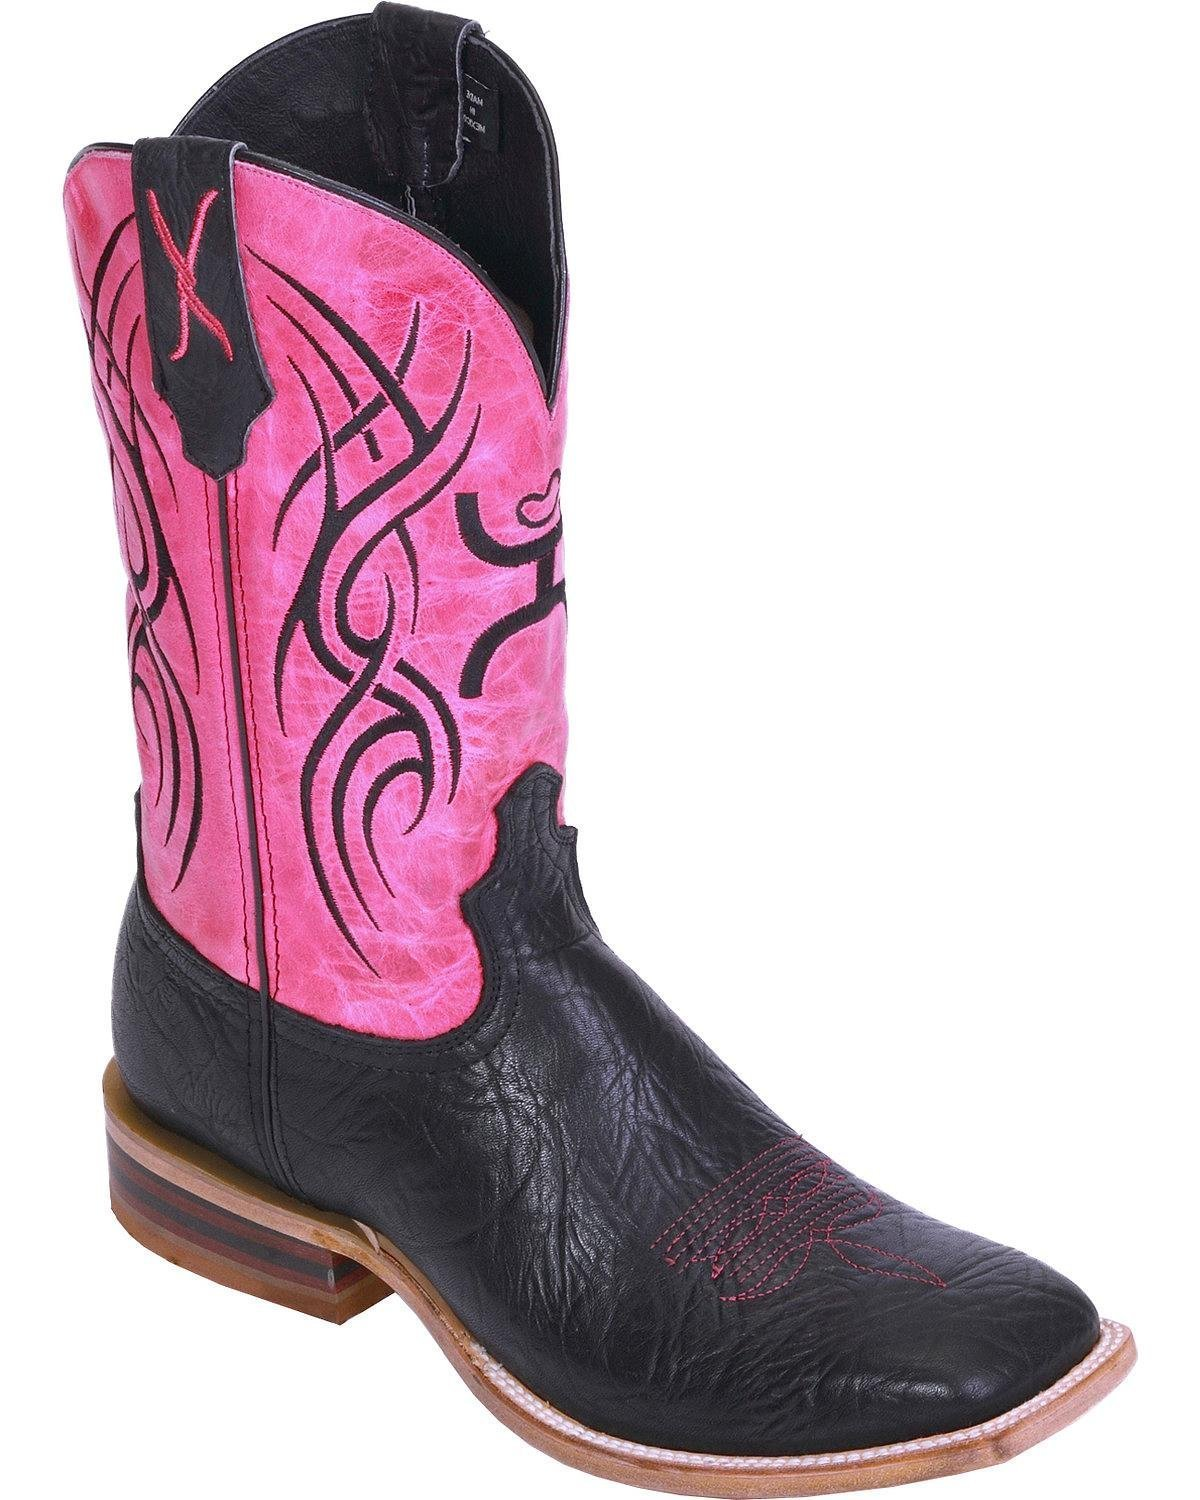 Twisted X Women'S Hooey Boot, Color Black/Neon Pink (Why0001) B00P1MM90Q 7 B(M) US|Black